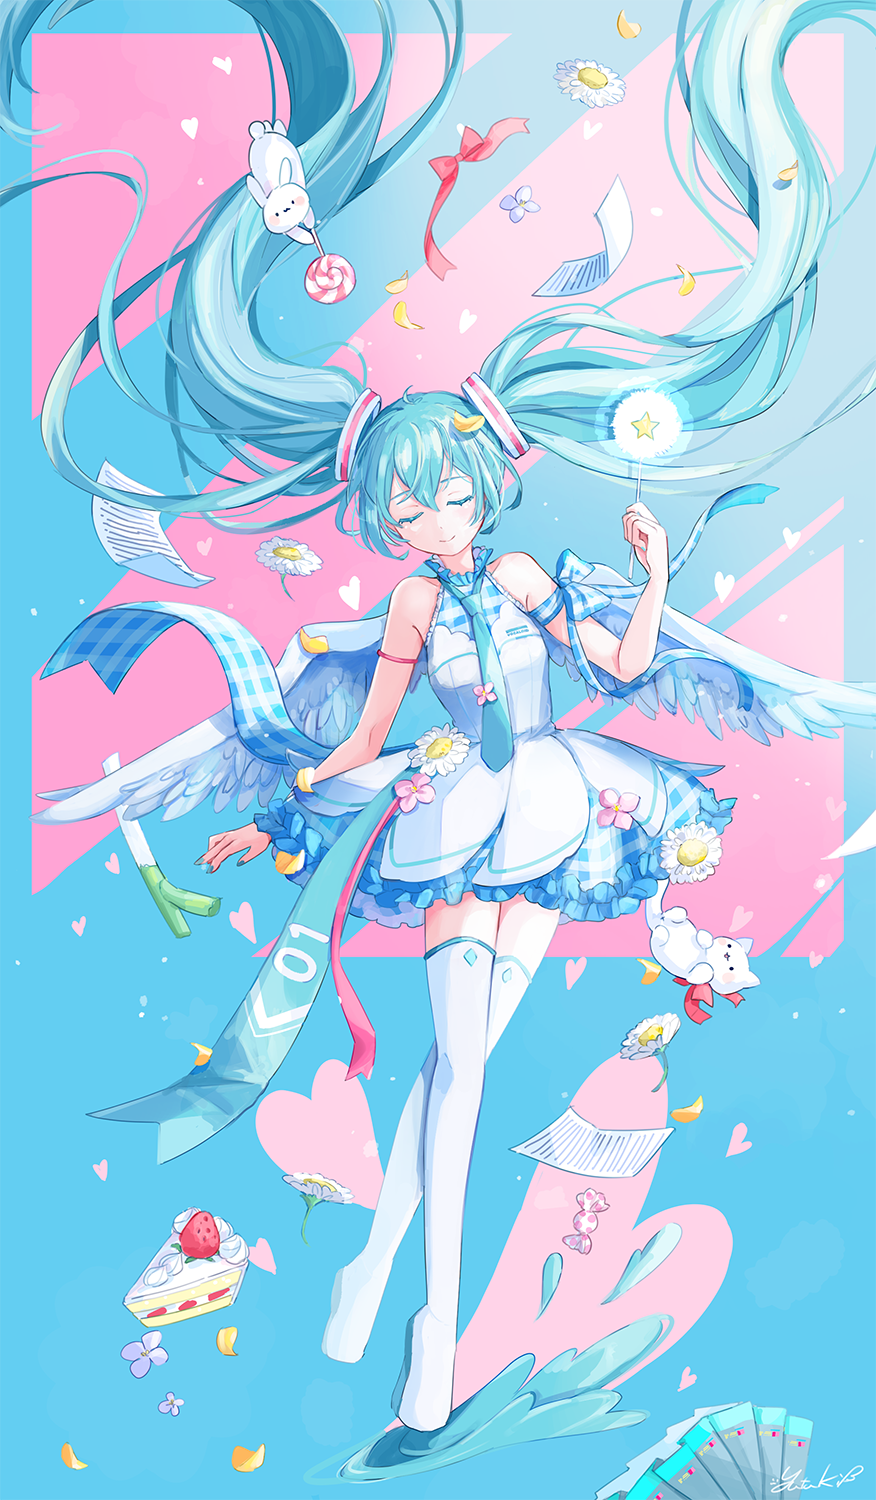 1girl adapted_costume angel_wings arm_at_side arm_ribbon armlet armpit_crease bare_arms black_skirt blue_eyelashes blue_hair blue_nails blue_neckwear blue_theme blue_wings boots breasts cake cake_slice candy candy_wrapper closed_eyes closed_mouth colored_eyelashes cream dot_nose dress dress_flower facing_viewer feathered_wings fingernails floating floating_hair flower food frilled_dress frills fruit full_body glowing hair_between_eyes hand_up hatsune_miku head_tilt heart heart_background high_collar highres holding holding_candy holding_food holding_lollipop holding_wand layered_dress light_blue_background light_particles light_smile limited_palette lollipop long_hair necktie paper pastel_colors petals pink_flower pink_theme plaid plaid_dress plaid_ribbon pleated_skirt red_ribbon ribbon short_dress signature simple_background skirt sleeveless sleeveless_dress small_breasts solo spring_onion star_wand strawberry strawberry_shortcake striped striped_background stuffed_animal stuffed_bunny stuffed_cat stuffed_toy swirl_lollipop thigh-highs thigh_boots triangle twintails vocaloid wand white_flower white_footwear wings yutukicom zettai_ryouiki